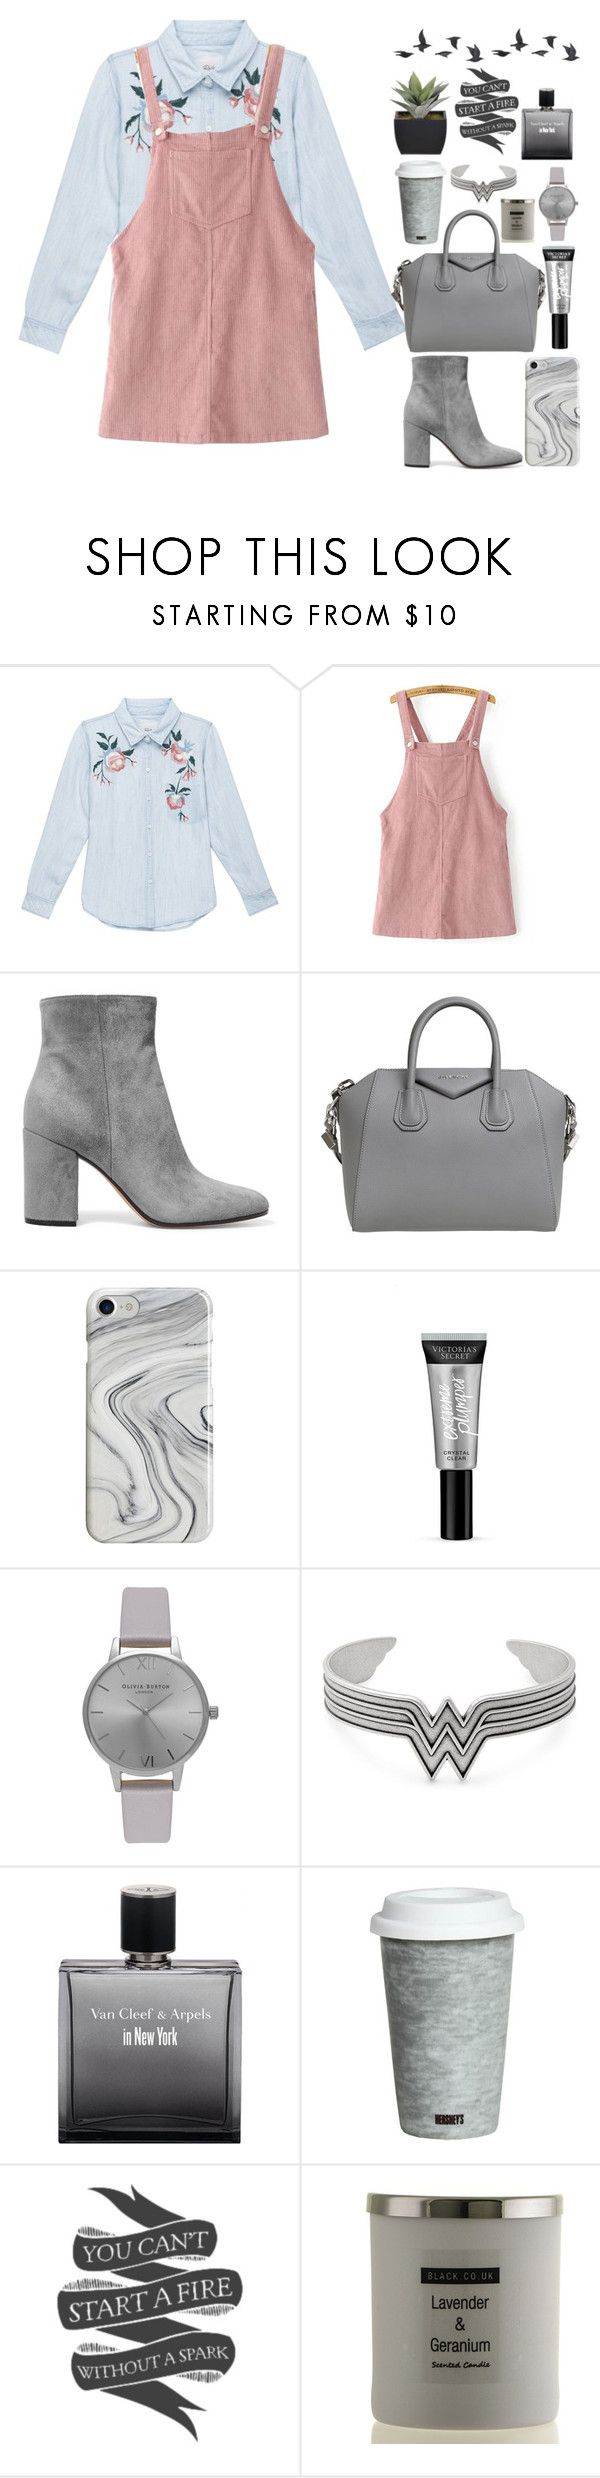 """""""Untitled #39"""" by violentnoise ❤ liked on Polyvore featuring Rails, WithChic, Gianvito Rossi, Givenchy, Recover, Victoria's Secret, Olivia Burton, Alex and Ani, Fitz & Floyd and Native State"""